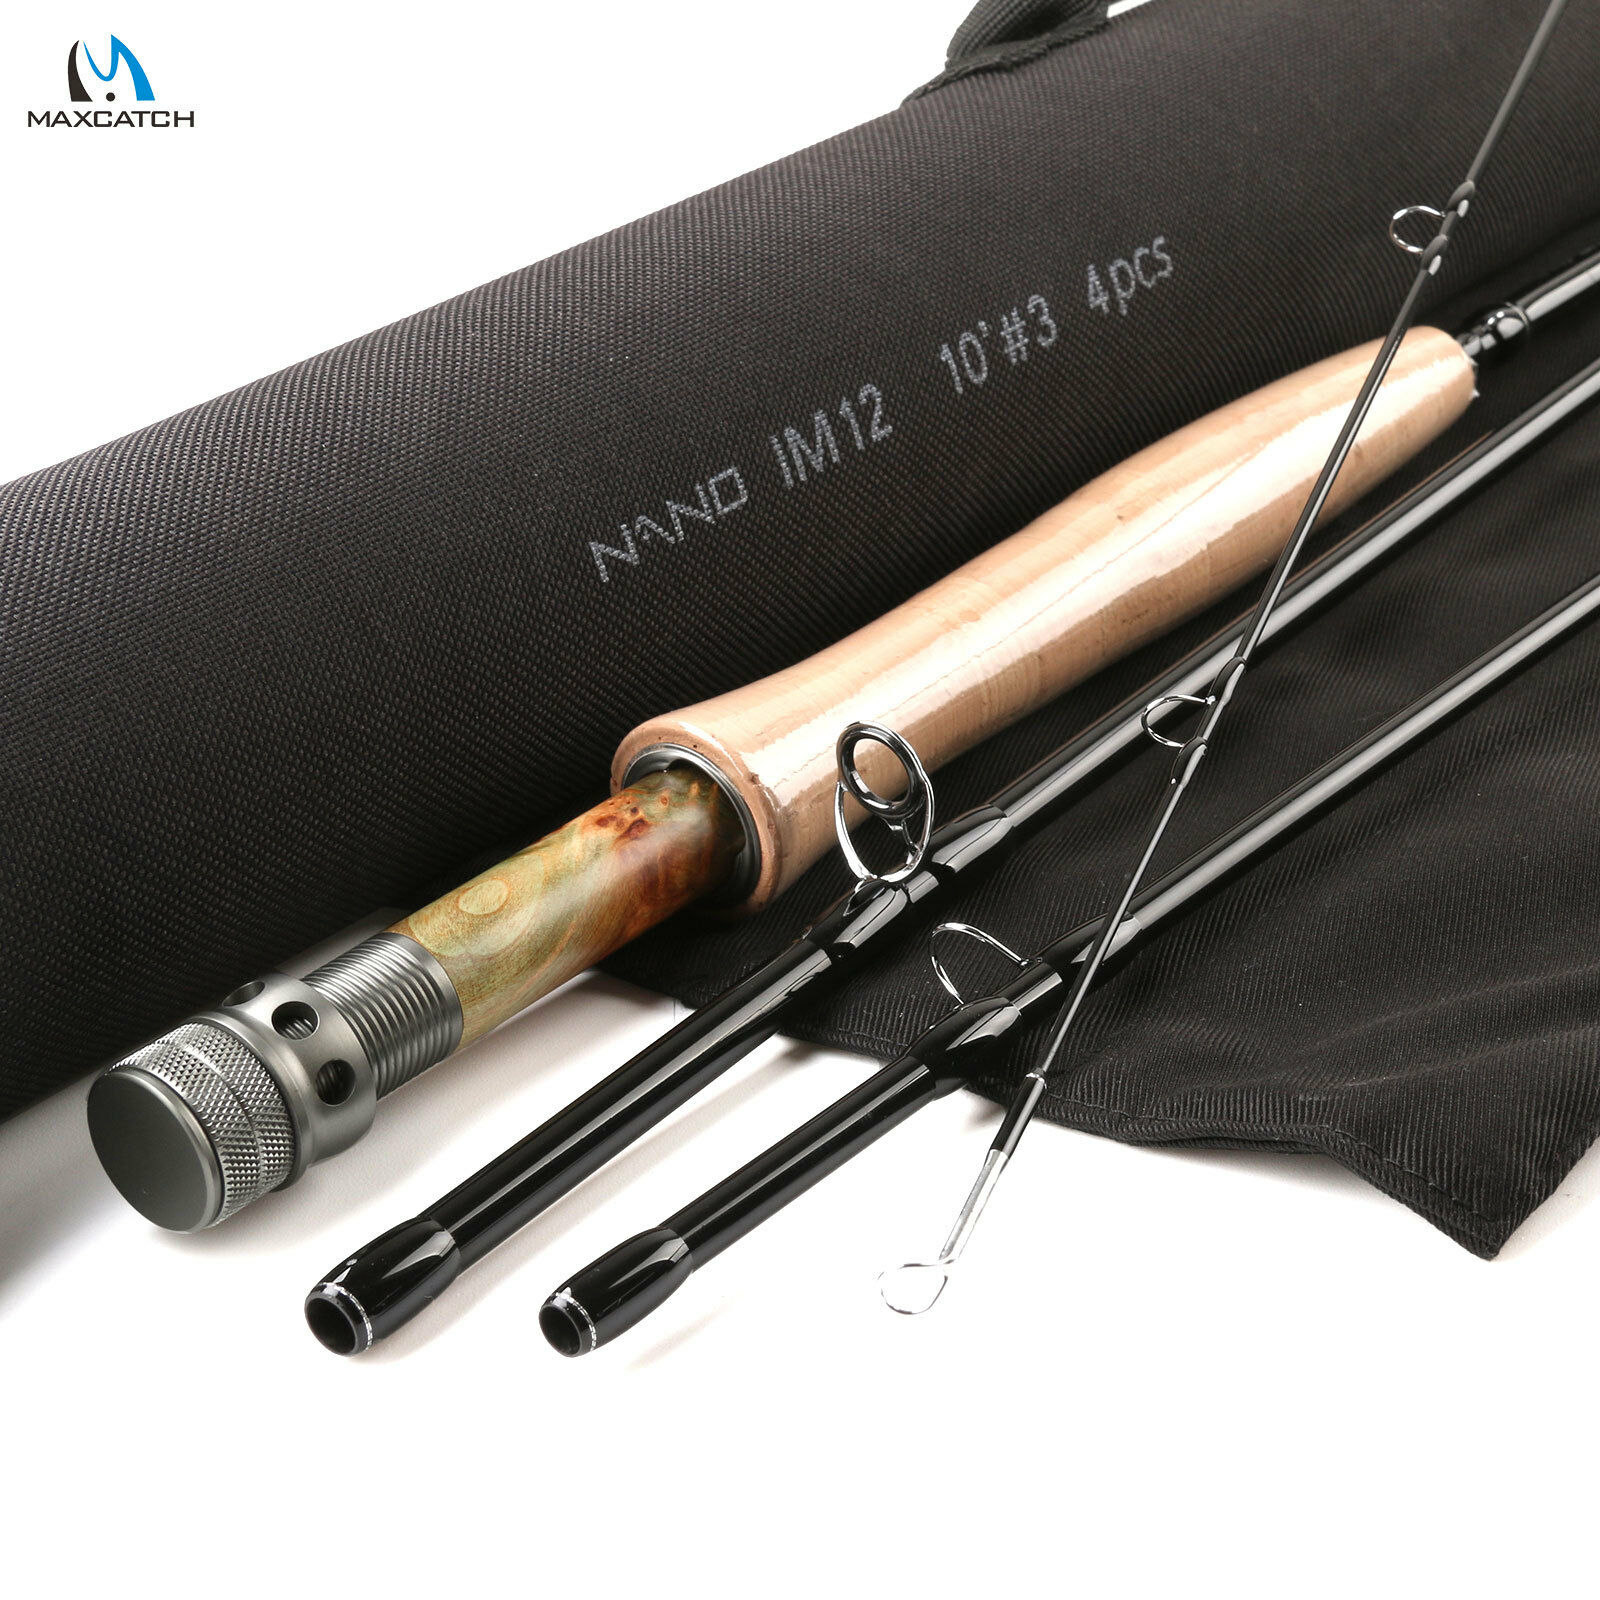 Nymph Fly Fishing Rod 10FT -wt -4Pcs NANO IM12 Graphite Carbon Fast 88g Only